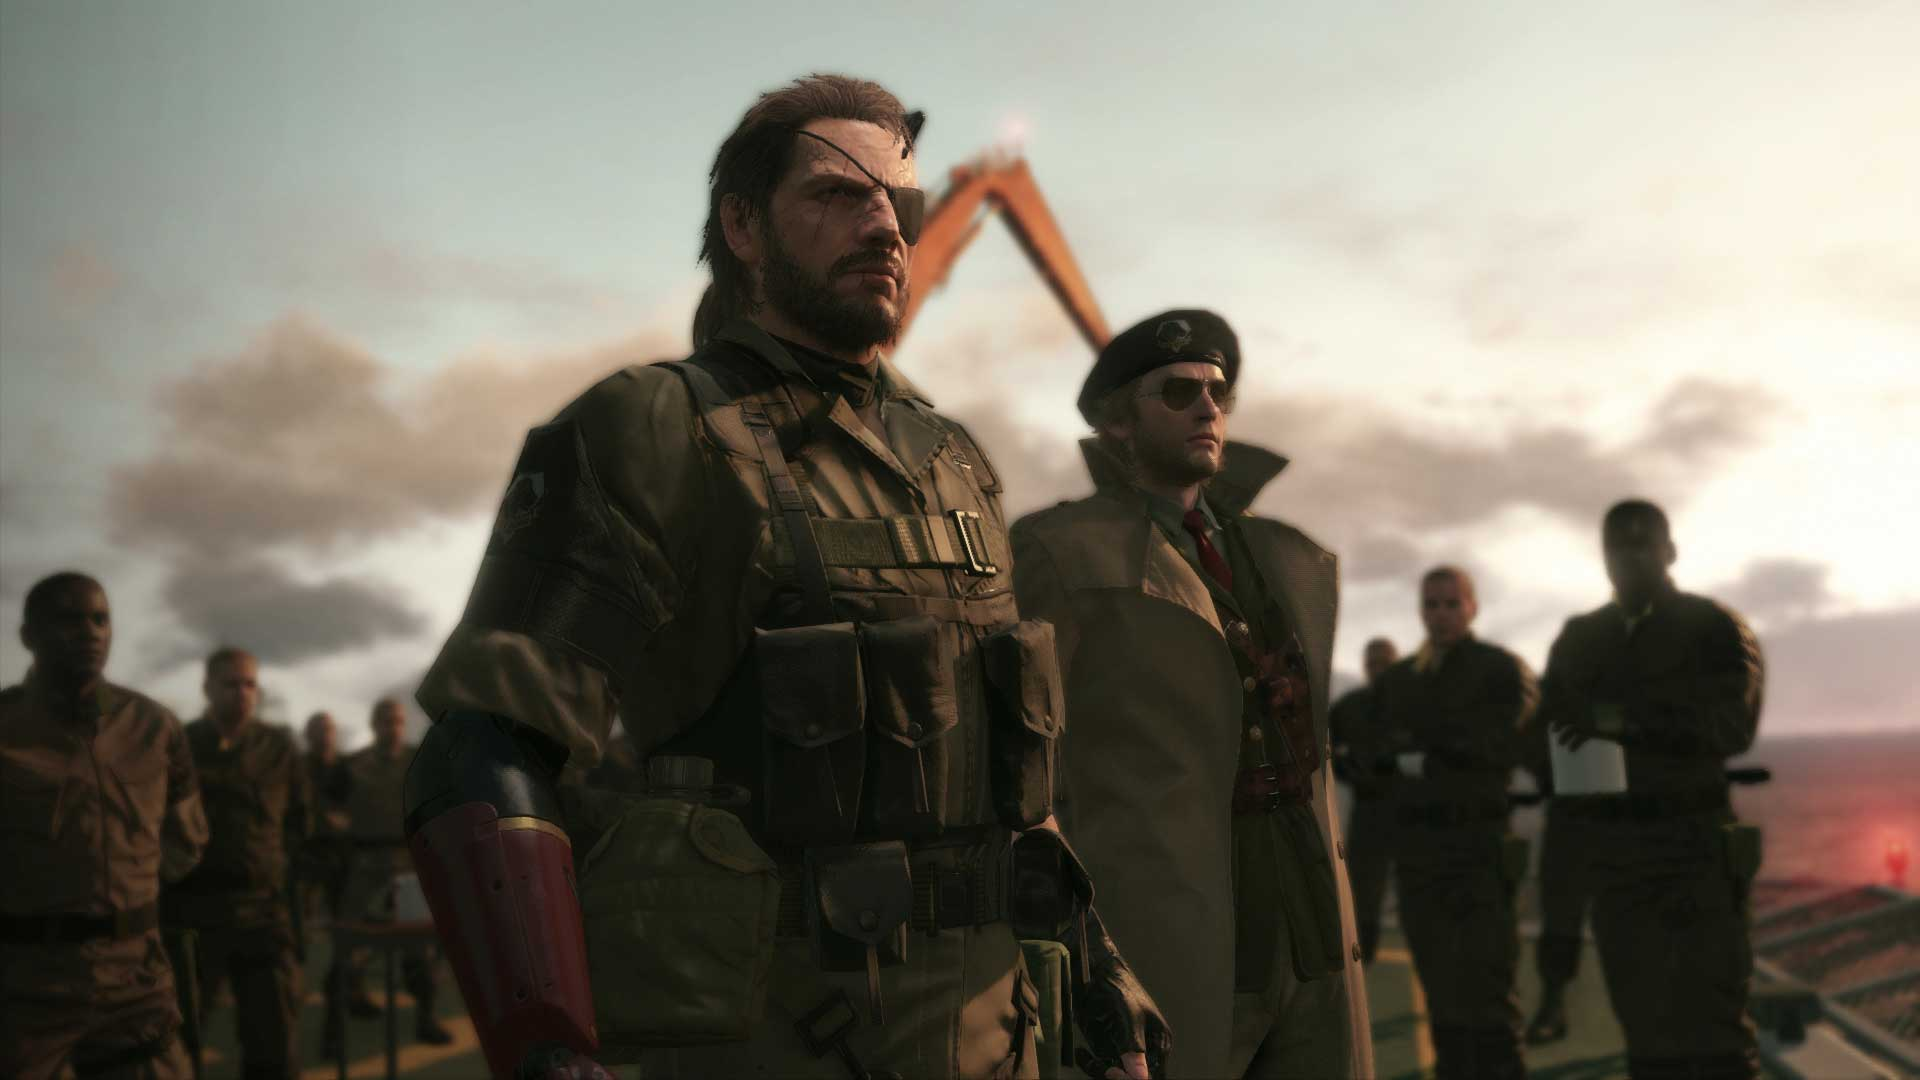 METAL GEAR SOLID V: THE PHANTOM PAIN | STEAM| FREE